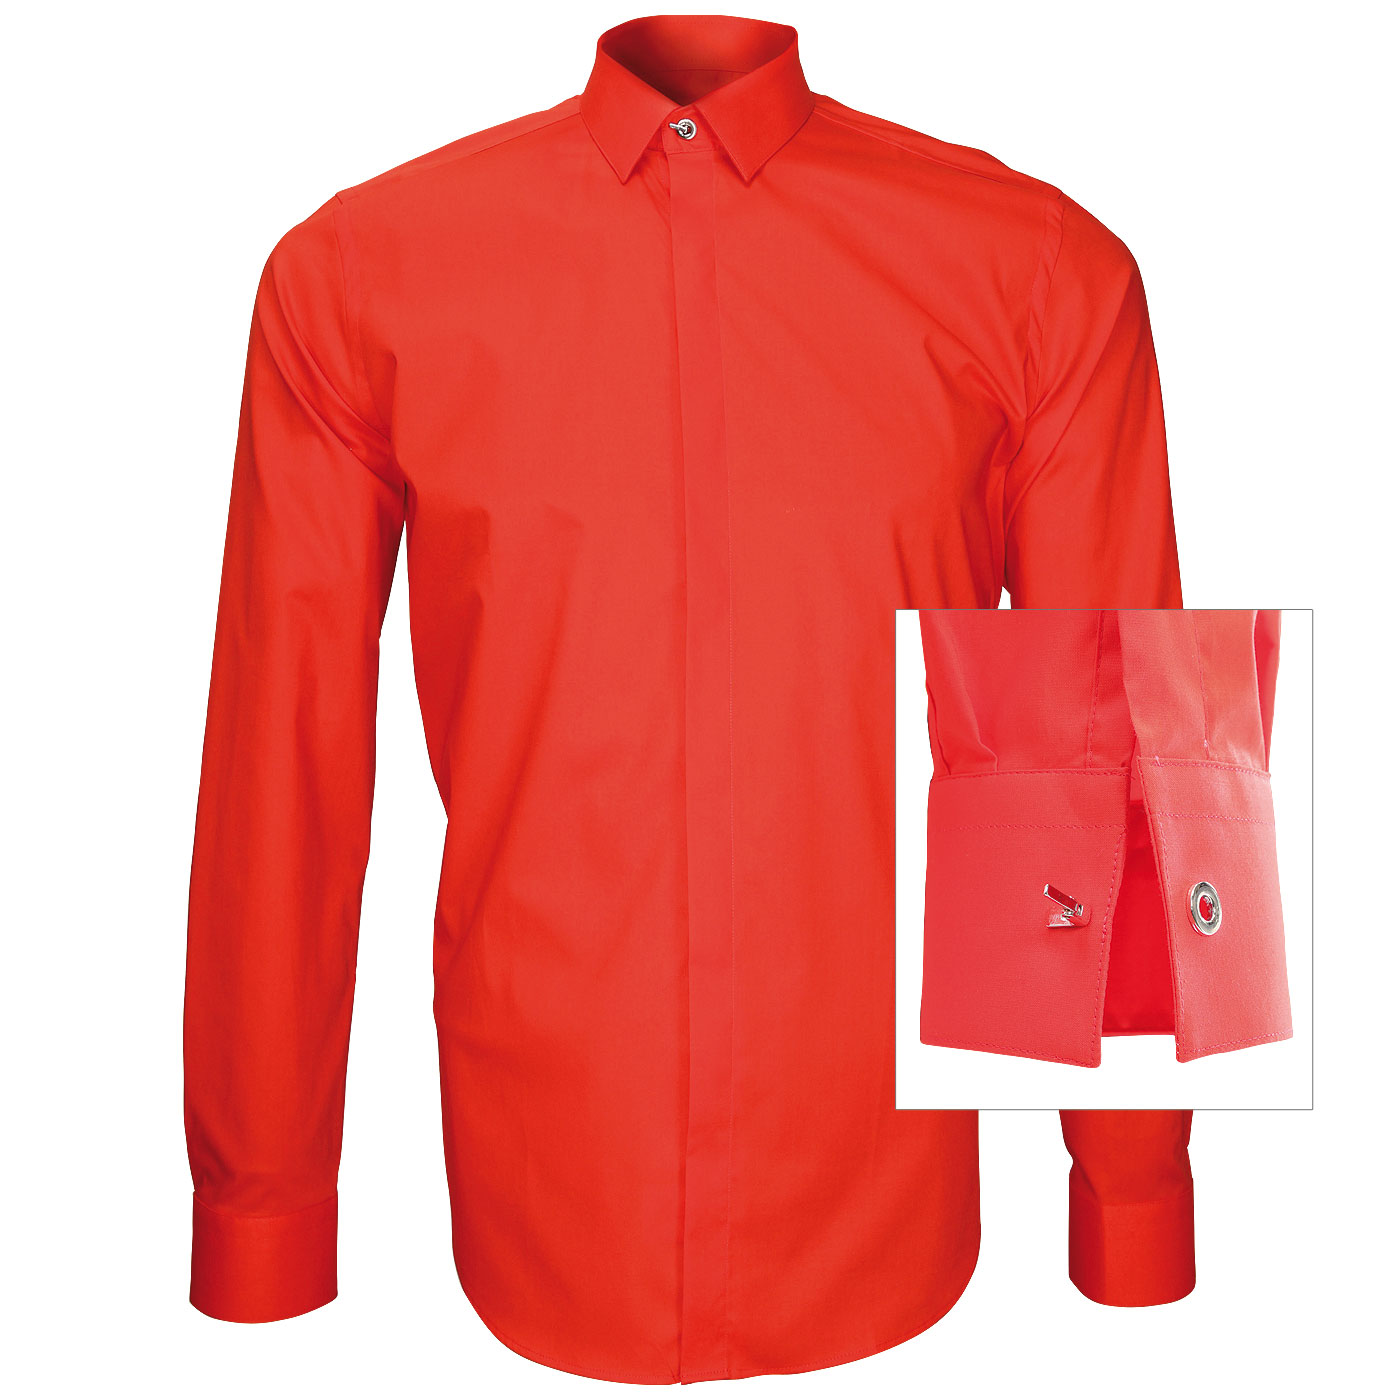 The red shirt for men from the new webmenshrits collection